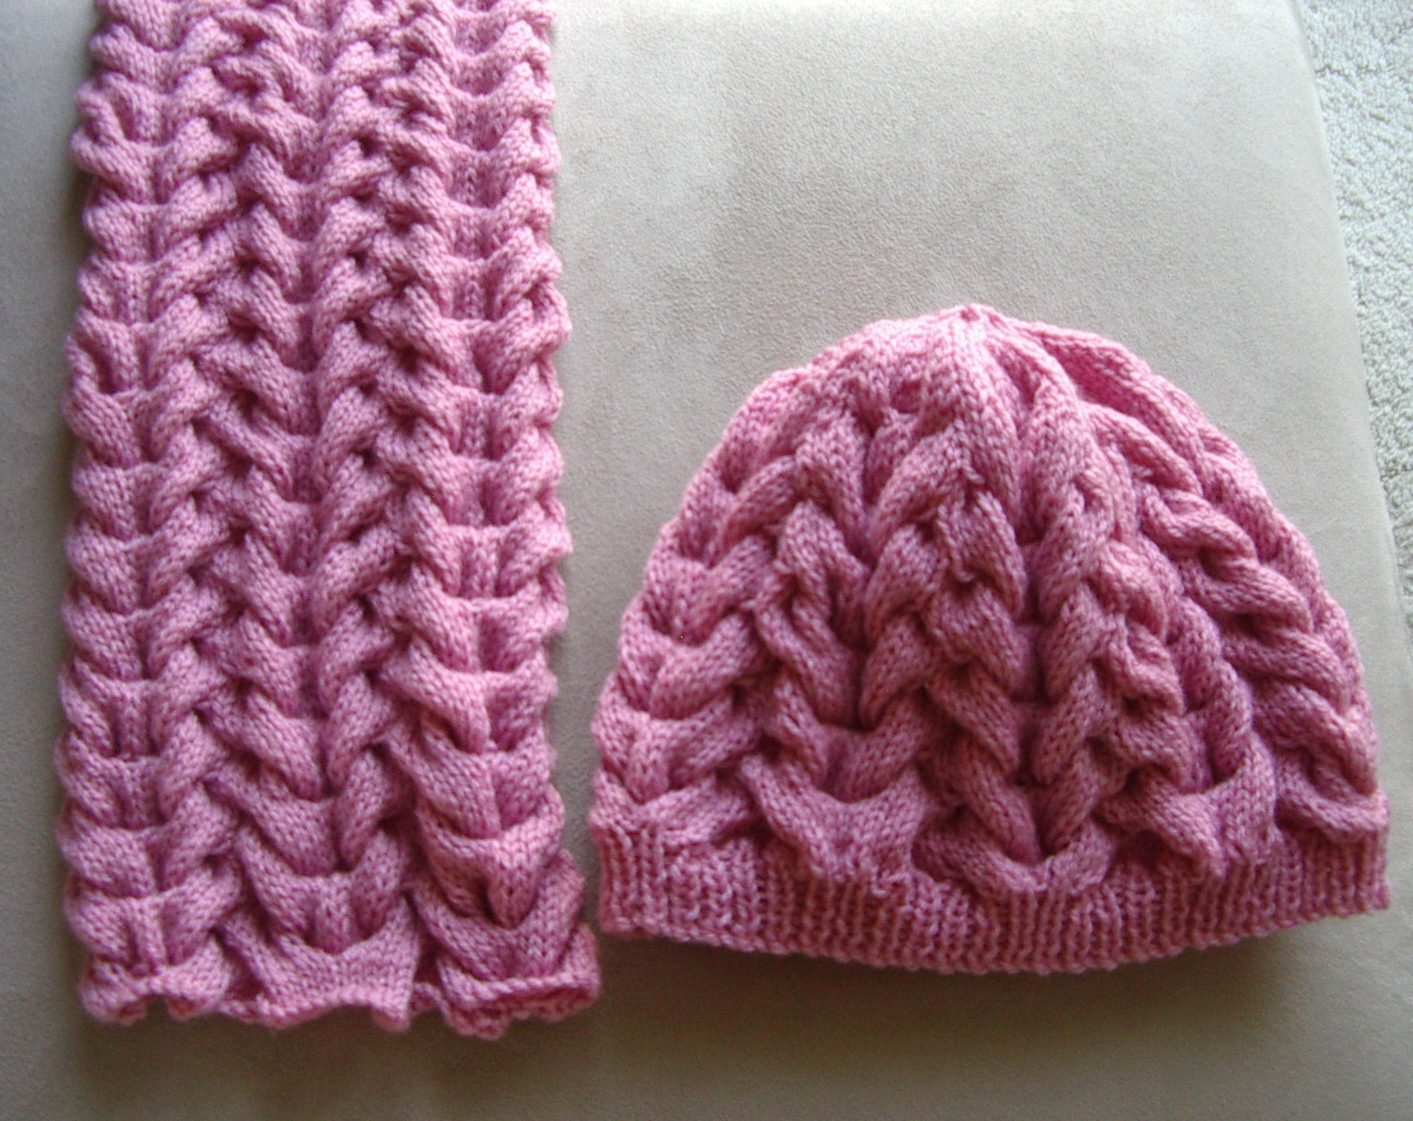 Knitting Pattern For Scarf And Beanie : add to cart